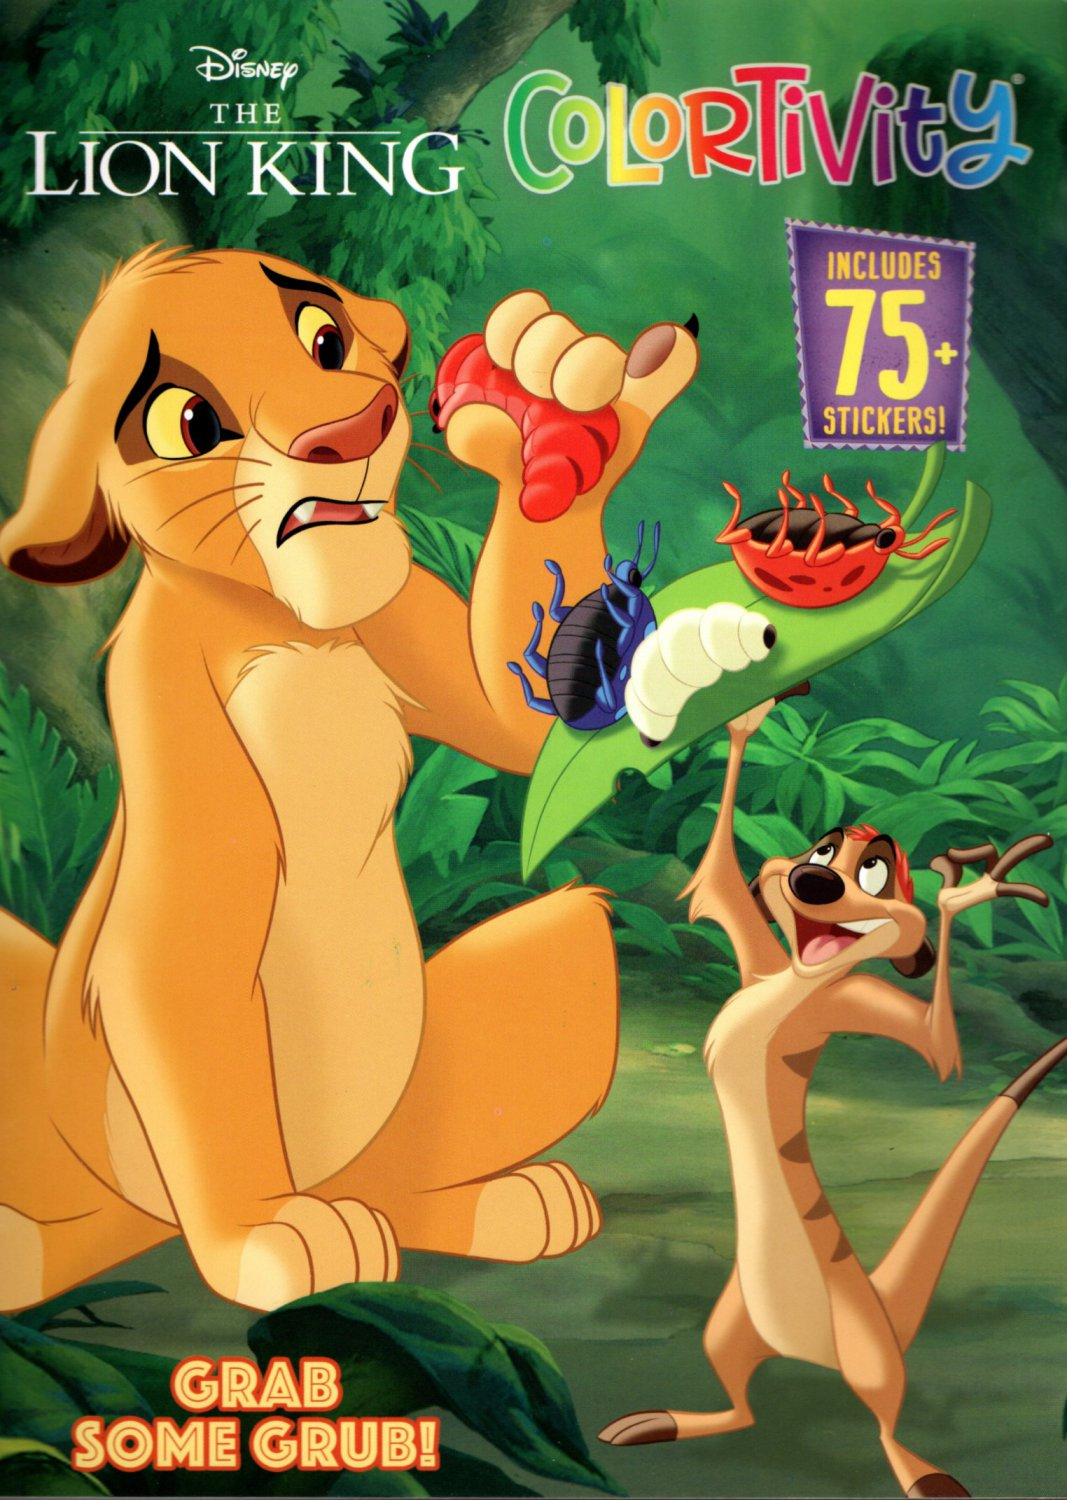 Colortivity Disney The Lion King - Grab Some Grub Coloring & Activity Book - Includes 75 Sticers